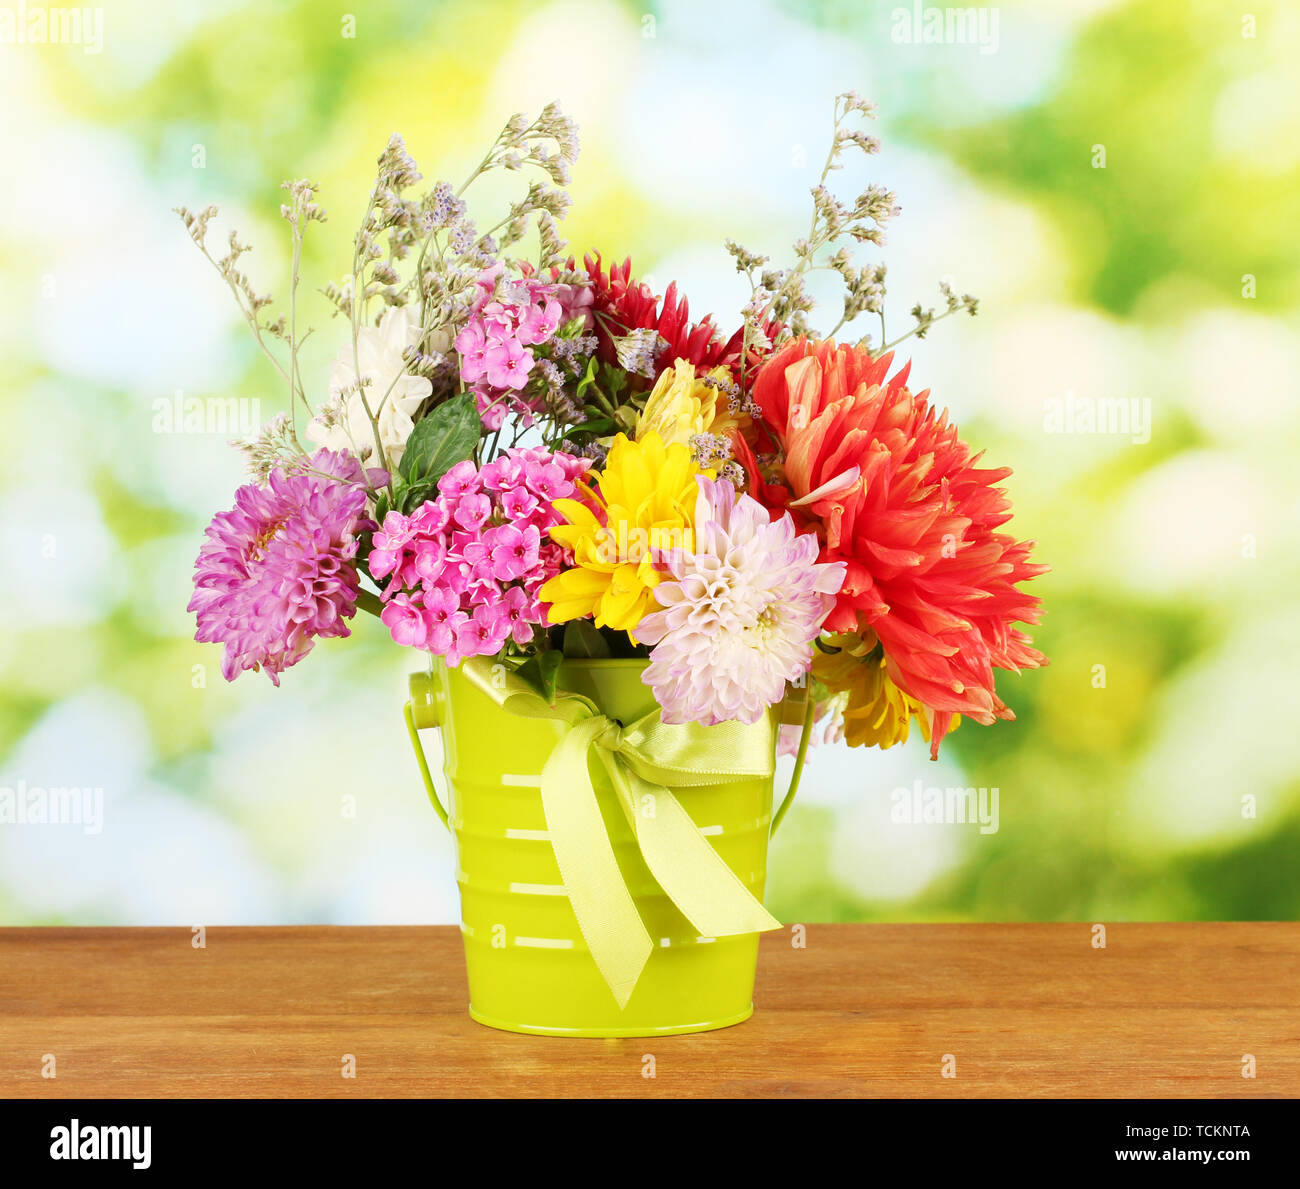 Bright green bucket with flowers on green background - Stock Image